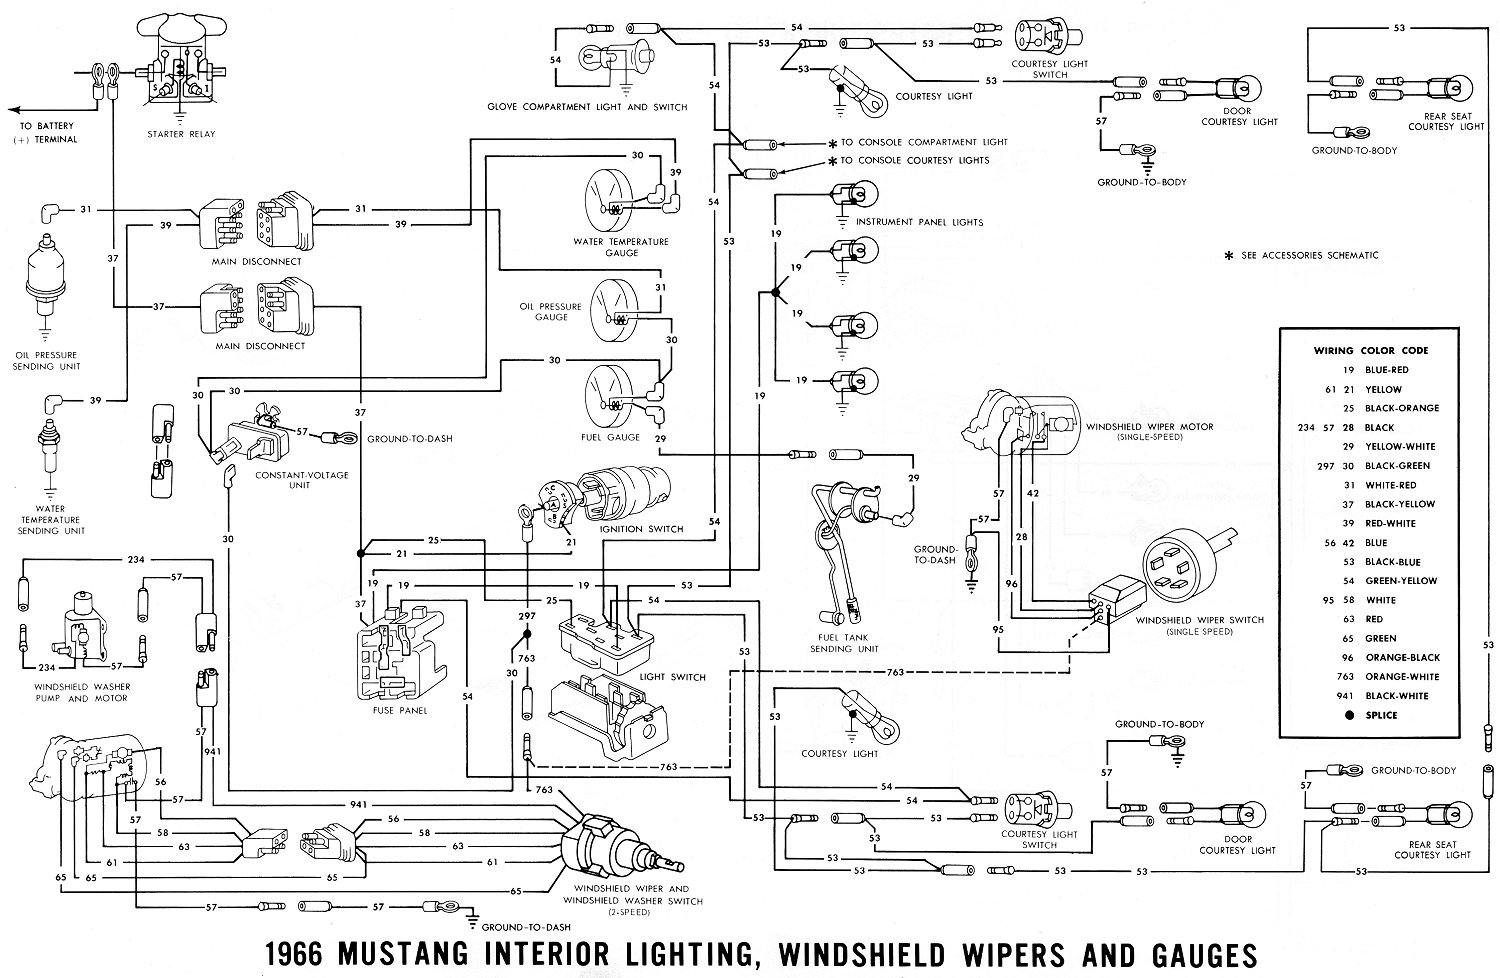 66inter1 1966 mustang wiring diagram 1967 mustang wiring schematic \u2022 wiring 1967 mustang ignition wiring diagram at bayanpartner.co